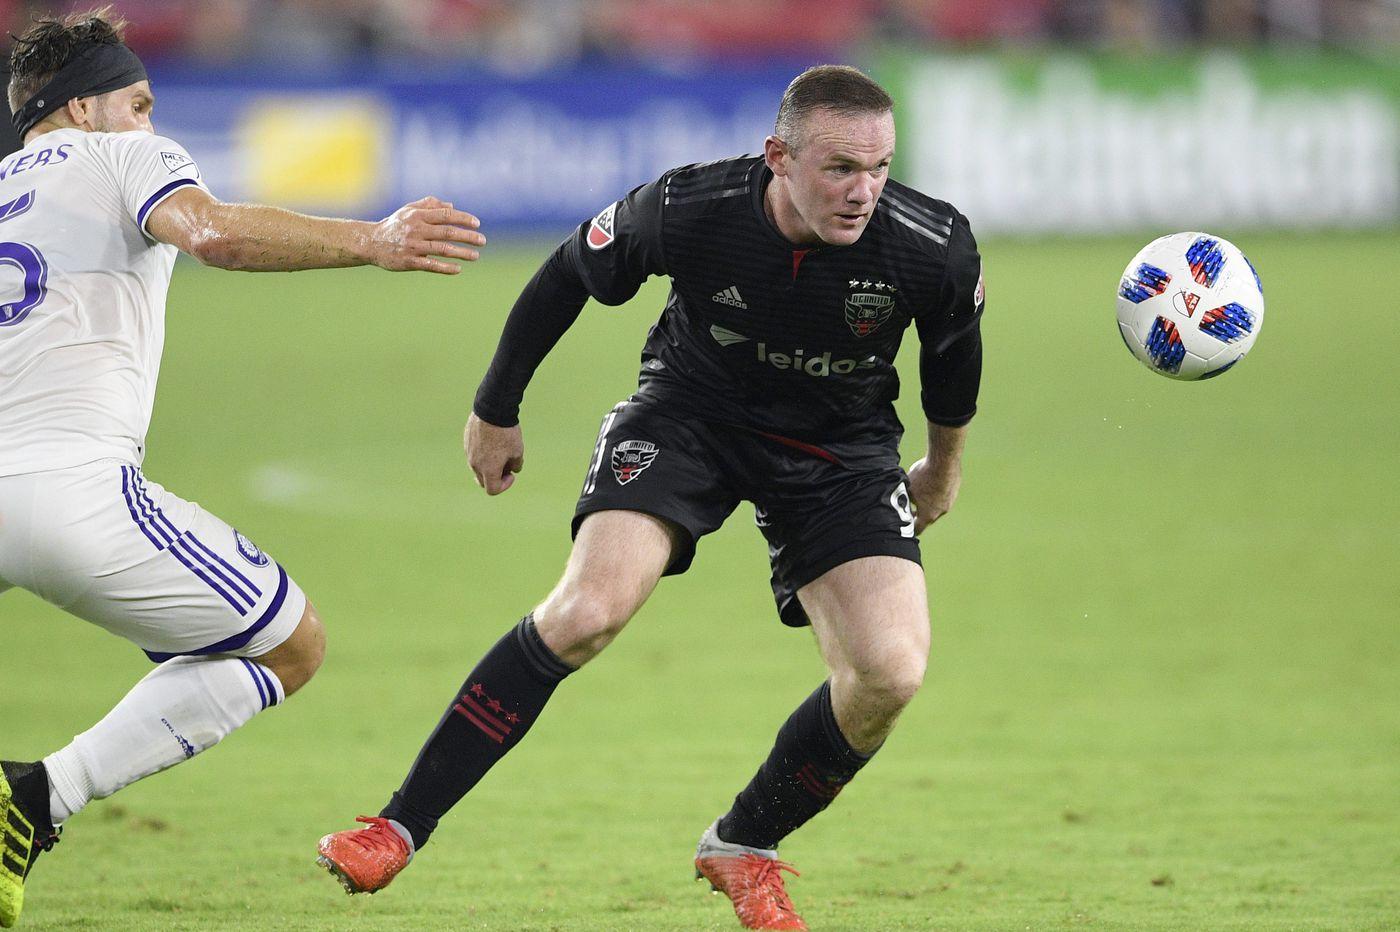 Union set to face Wayne Rooney, who has silenced the doubters after his move to D.C. United